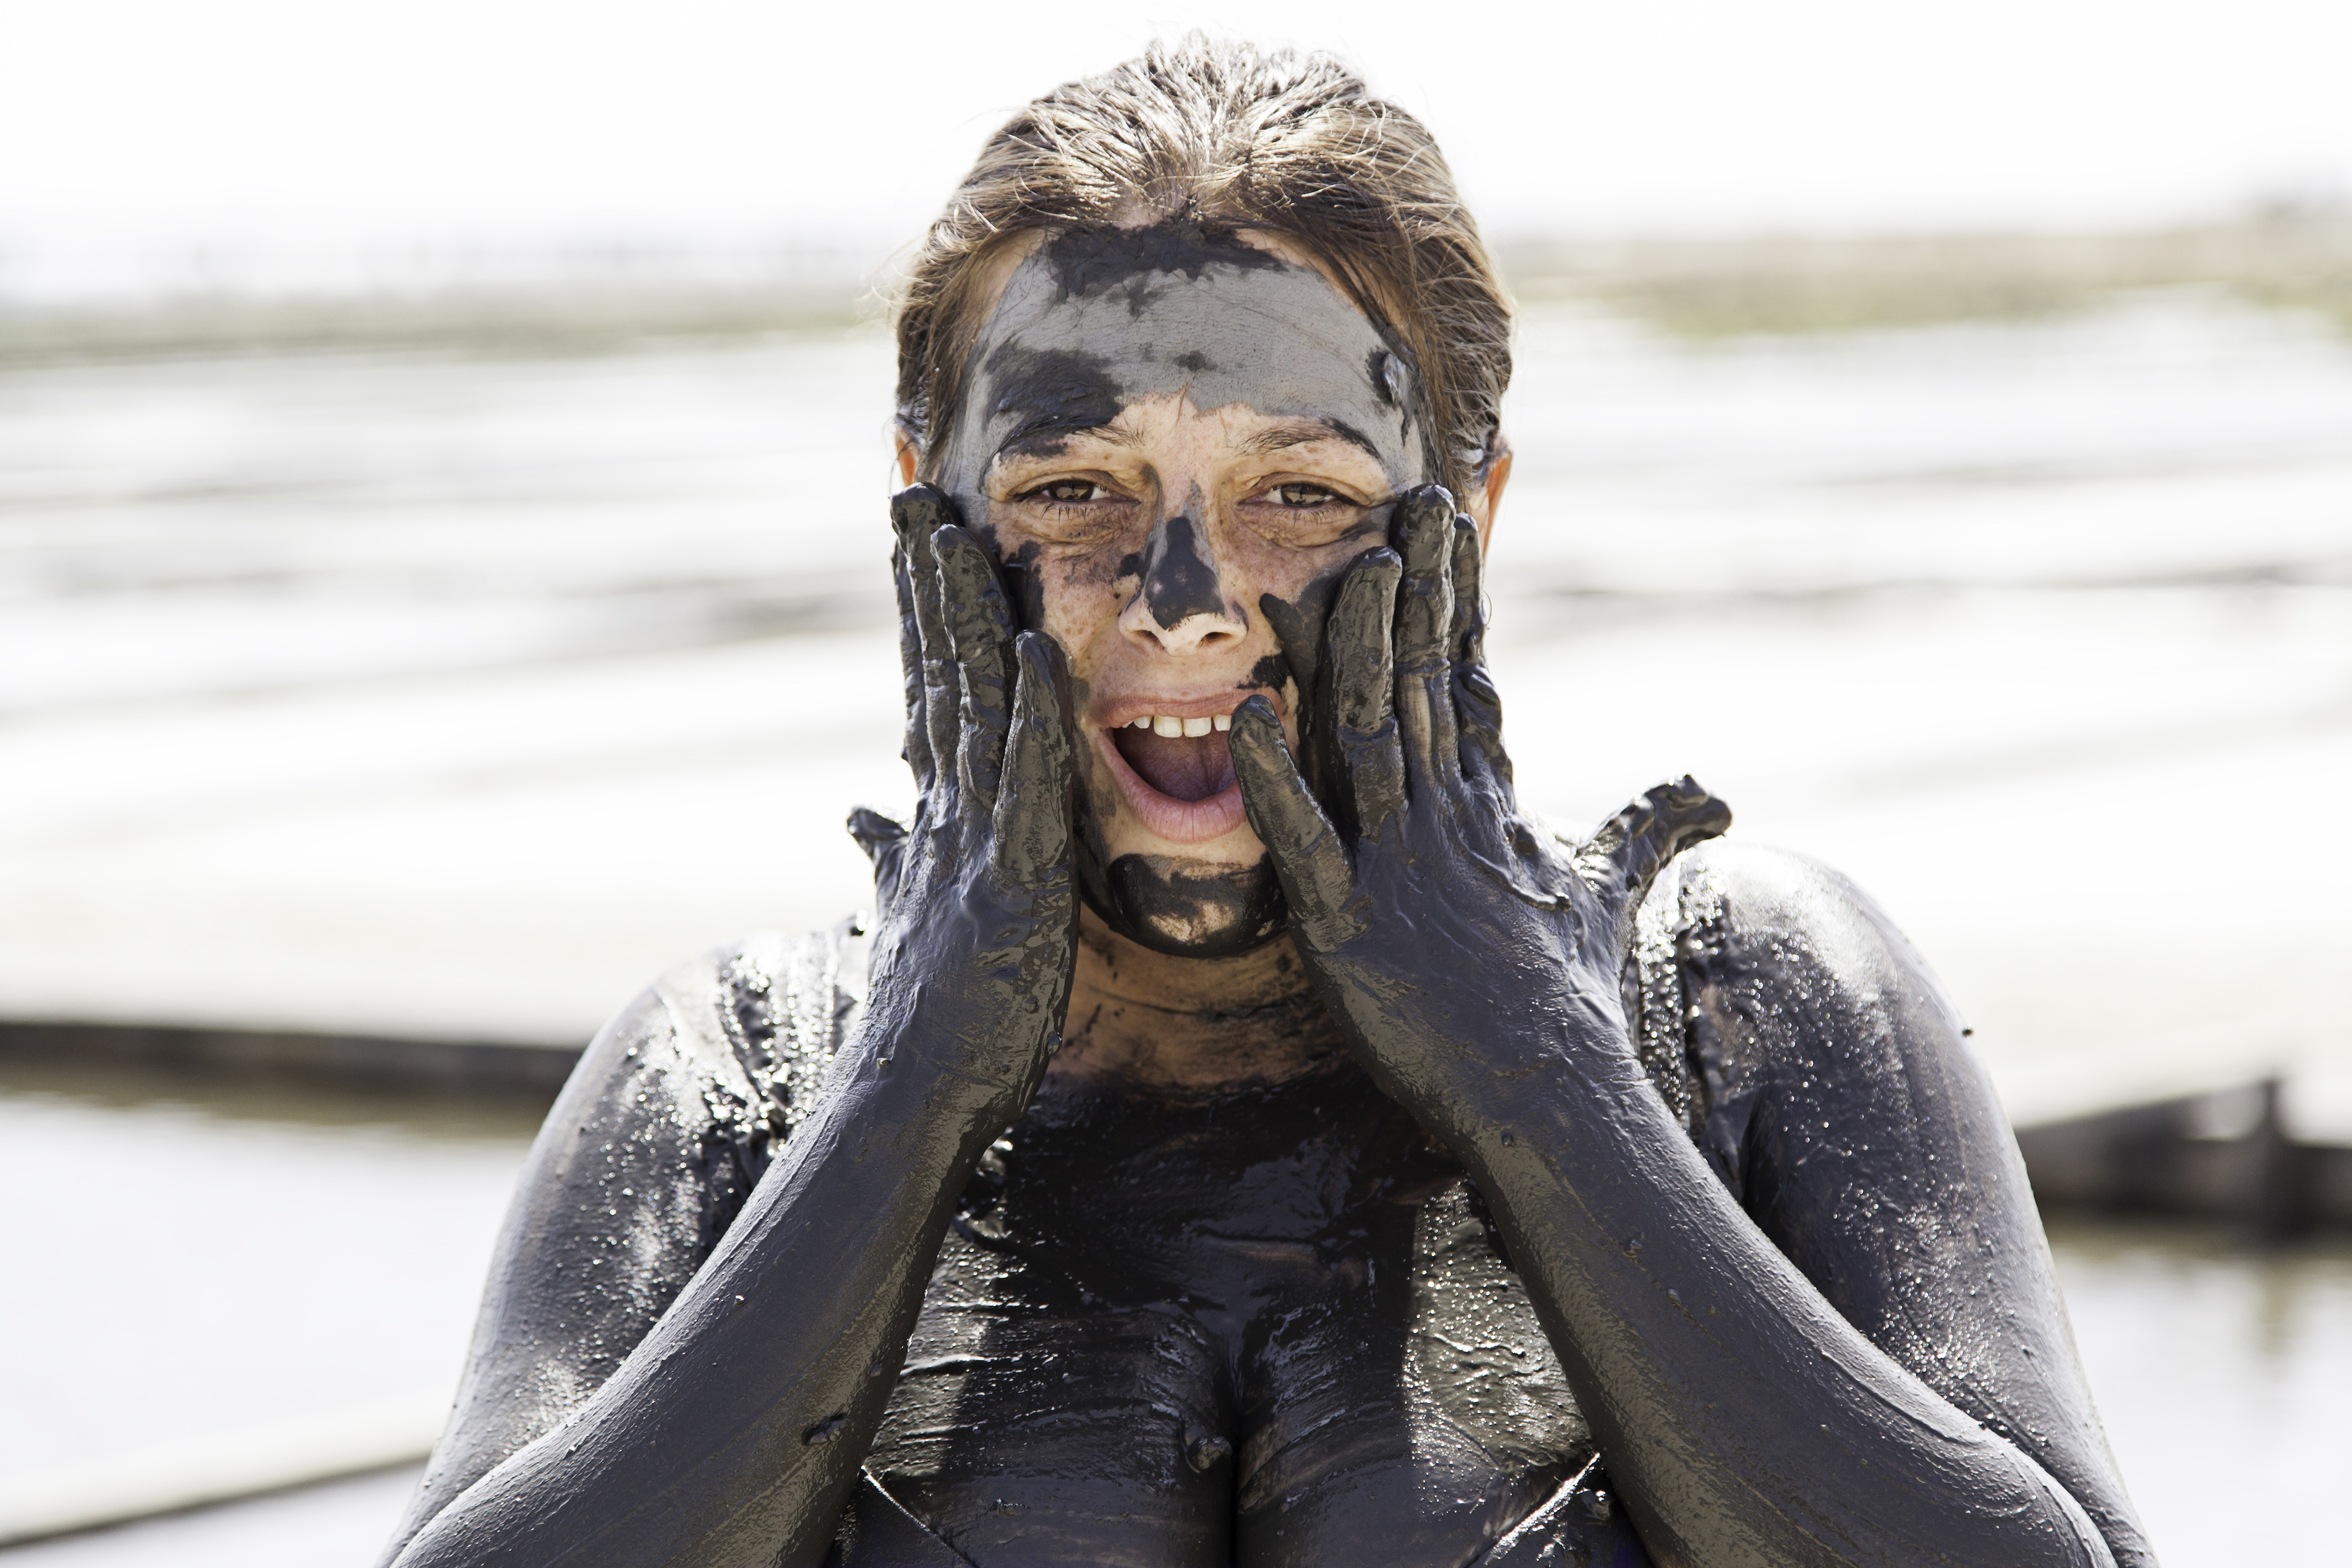 Natural mud baths at iRetreat Portugal, skin nourishment and cleansing